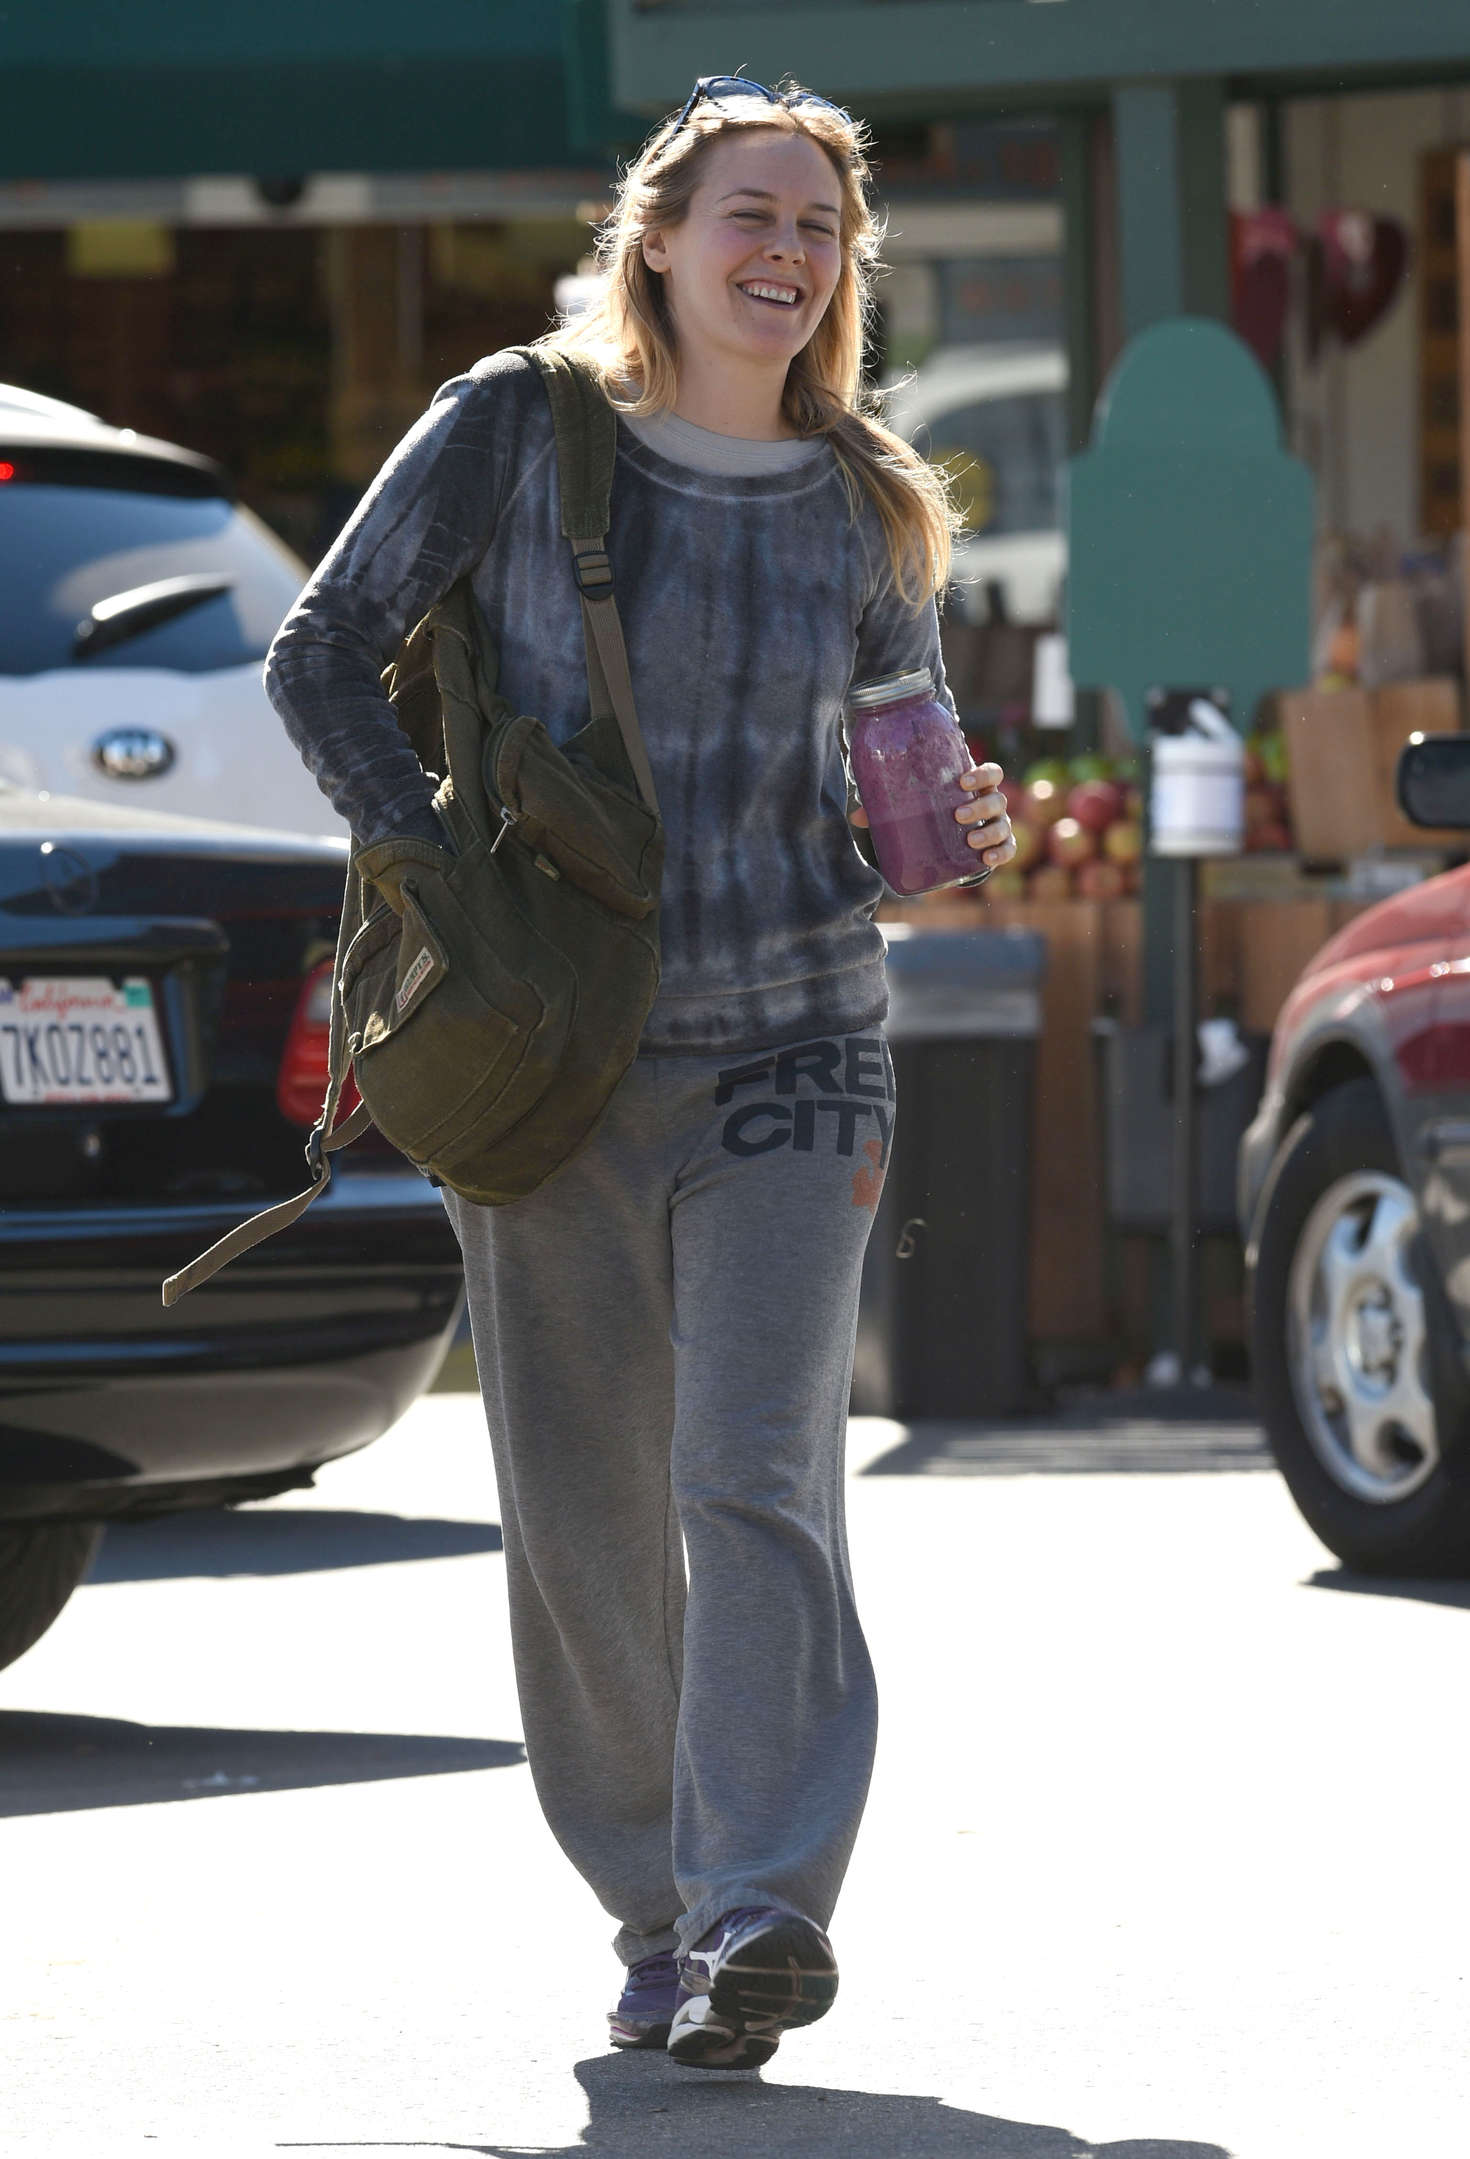 Alicia Silverstone at Whole Foods in Los Angeles